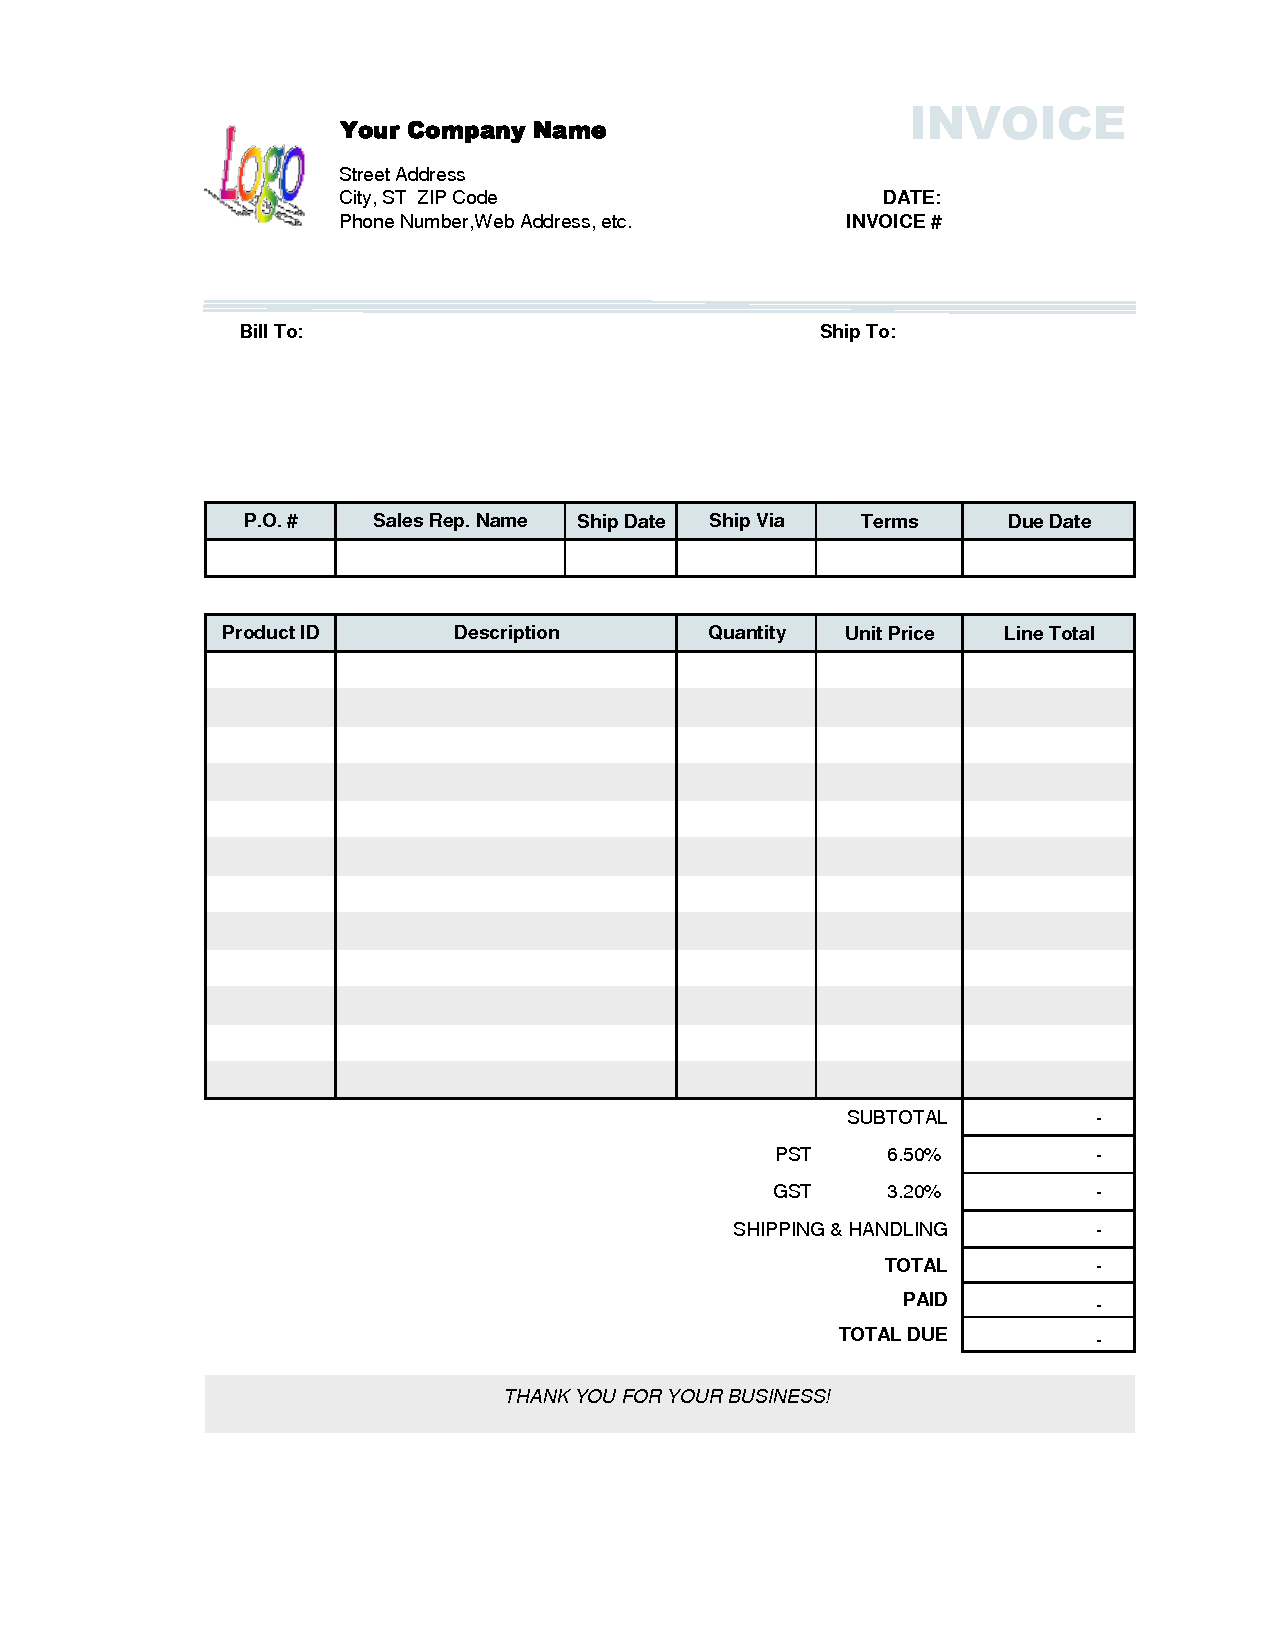 Proatmealus  Wonderful Invoice Template And Templates On Pinterest With Marvelous Free Invoice Maker Besides Online Invoice Furthermore Invoice Price With Enchanting Google Invoice Also Proforma Invoice In Addition Invoice Template Google Docs And Invoice Template Pdf As Well As How To Delete An Invoice In Quickbooks Additionally Invoice In Spanish From Pinterestcom With Proatmealus  Marvelous Invoice Template And Templates On Pinterest With Enchanting Free Invoice Maker Besides Online Invoice Furthermore Invoice Price And Wonderful Google Invoice Also Proforma Invoice In Addition Invoice Template Google Docs From Pinterestcom